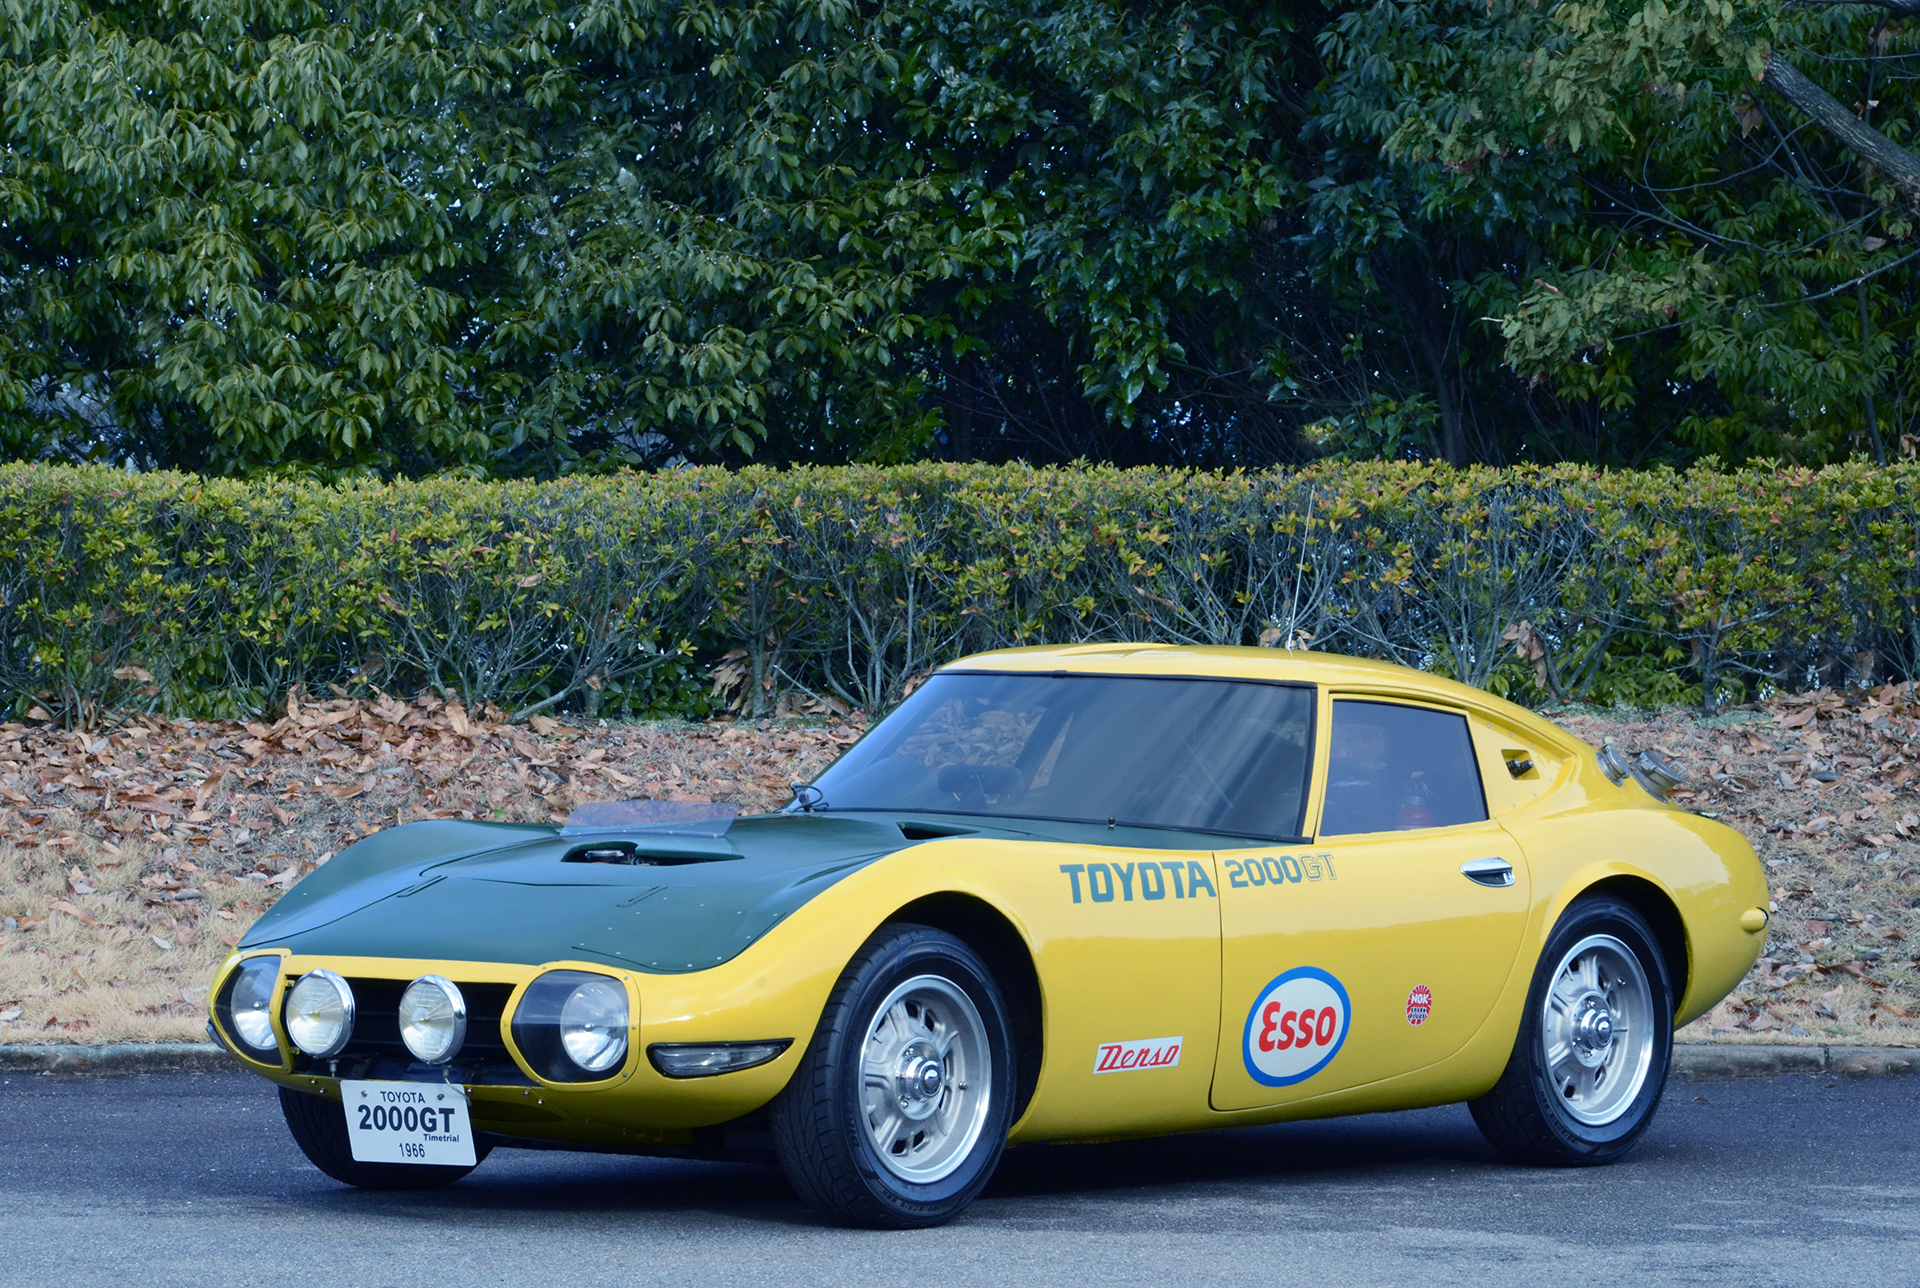 Toyota Yatabe Speed Trial 2000GT